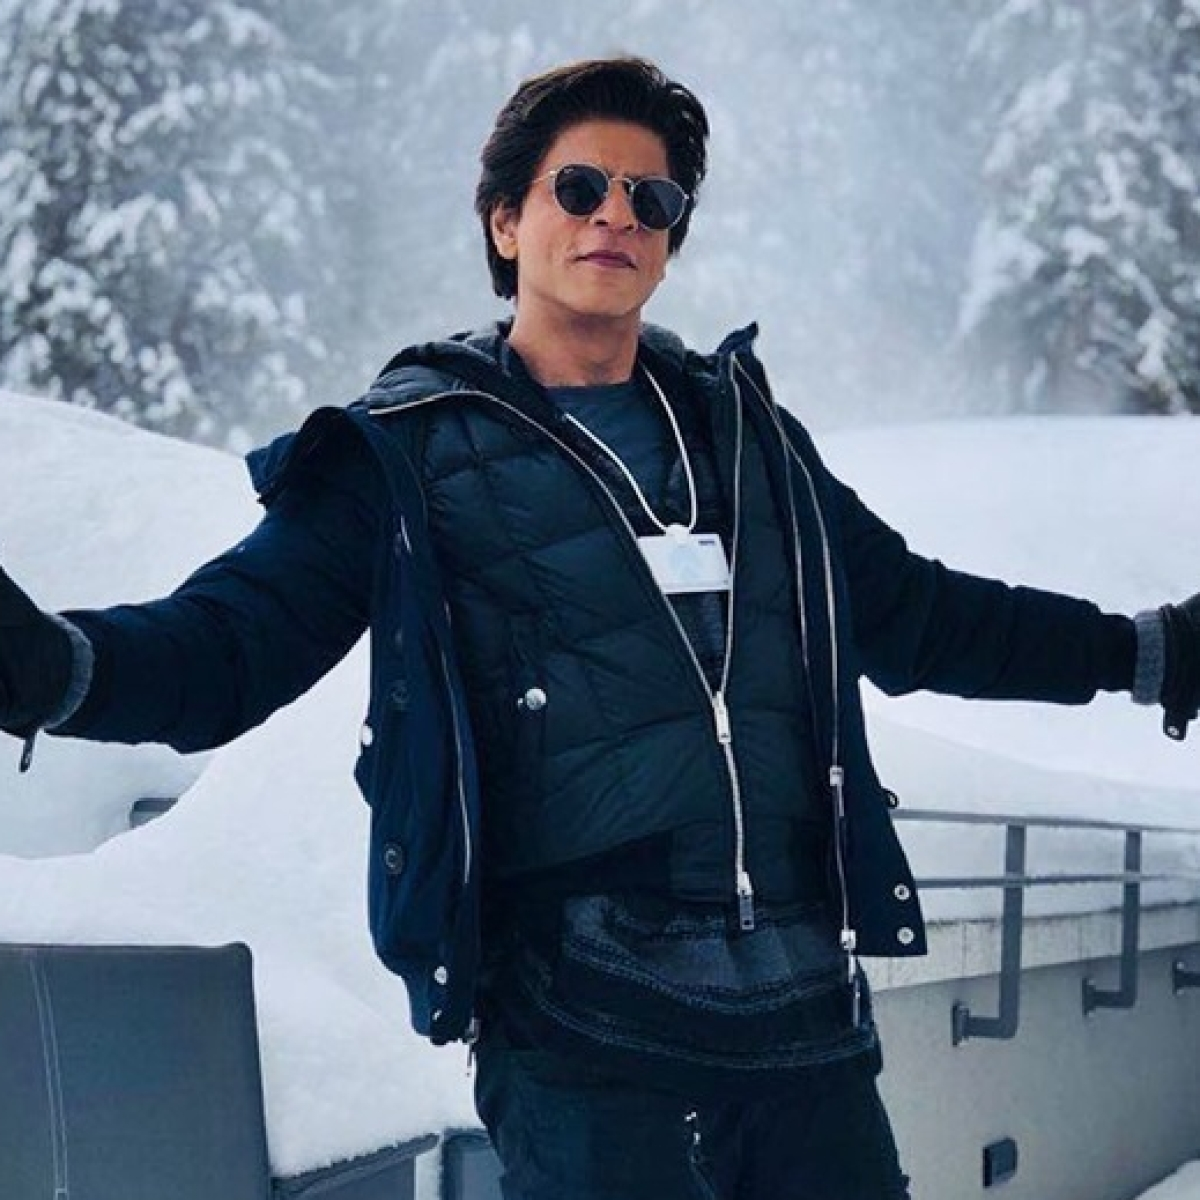 #AskSRK: Shah Rukh Khan yet again proves he's not just the king of romance but also sarcasm, wit